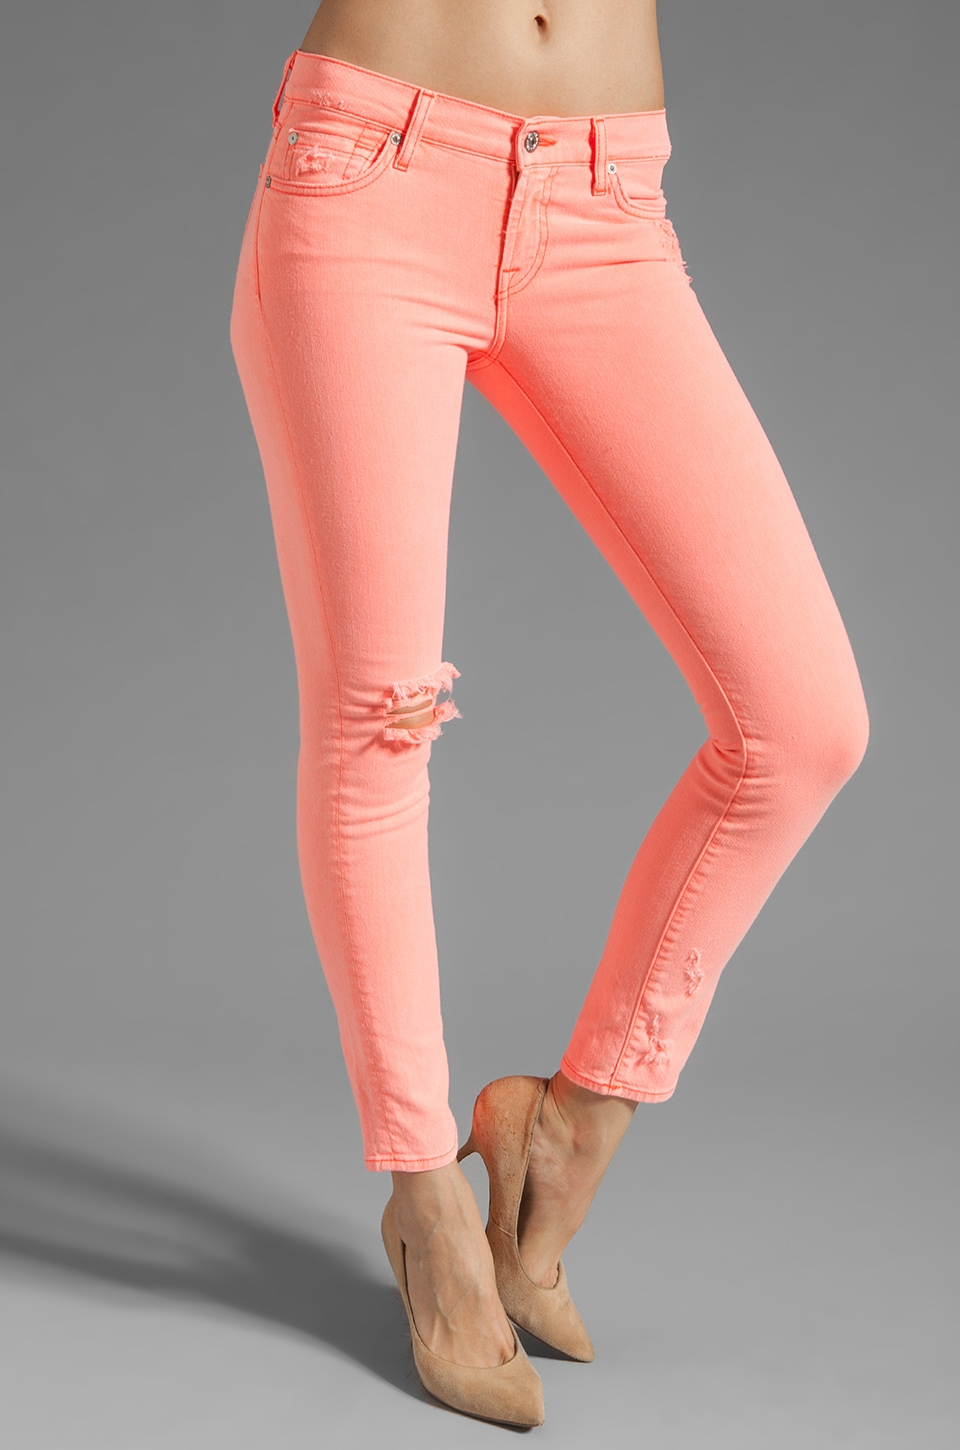 7 For All Mankind The Slim Cigarette in Neon Coral Destroyed